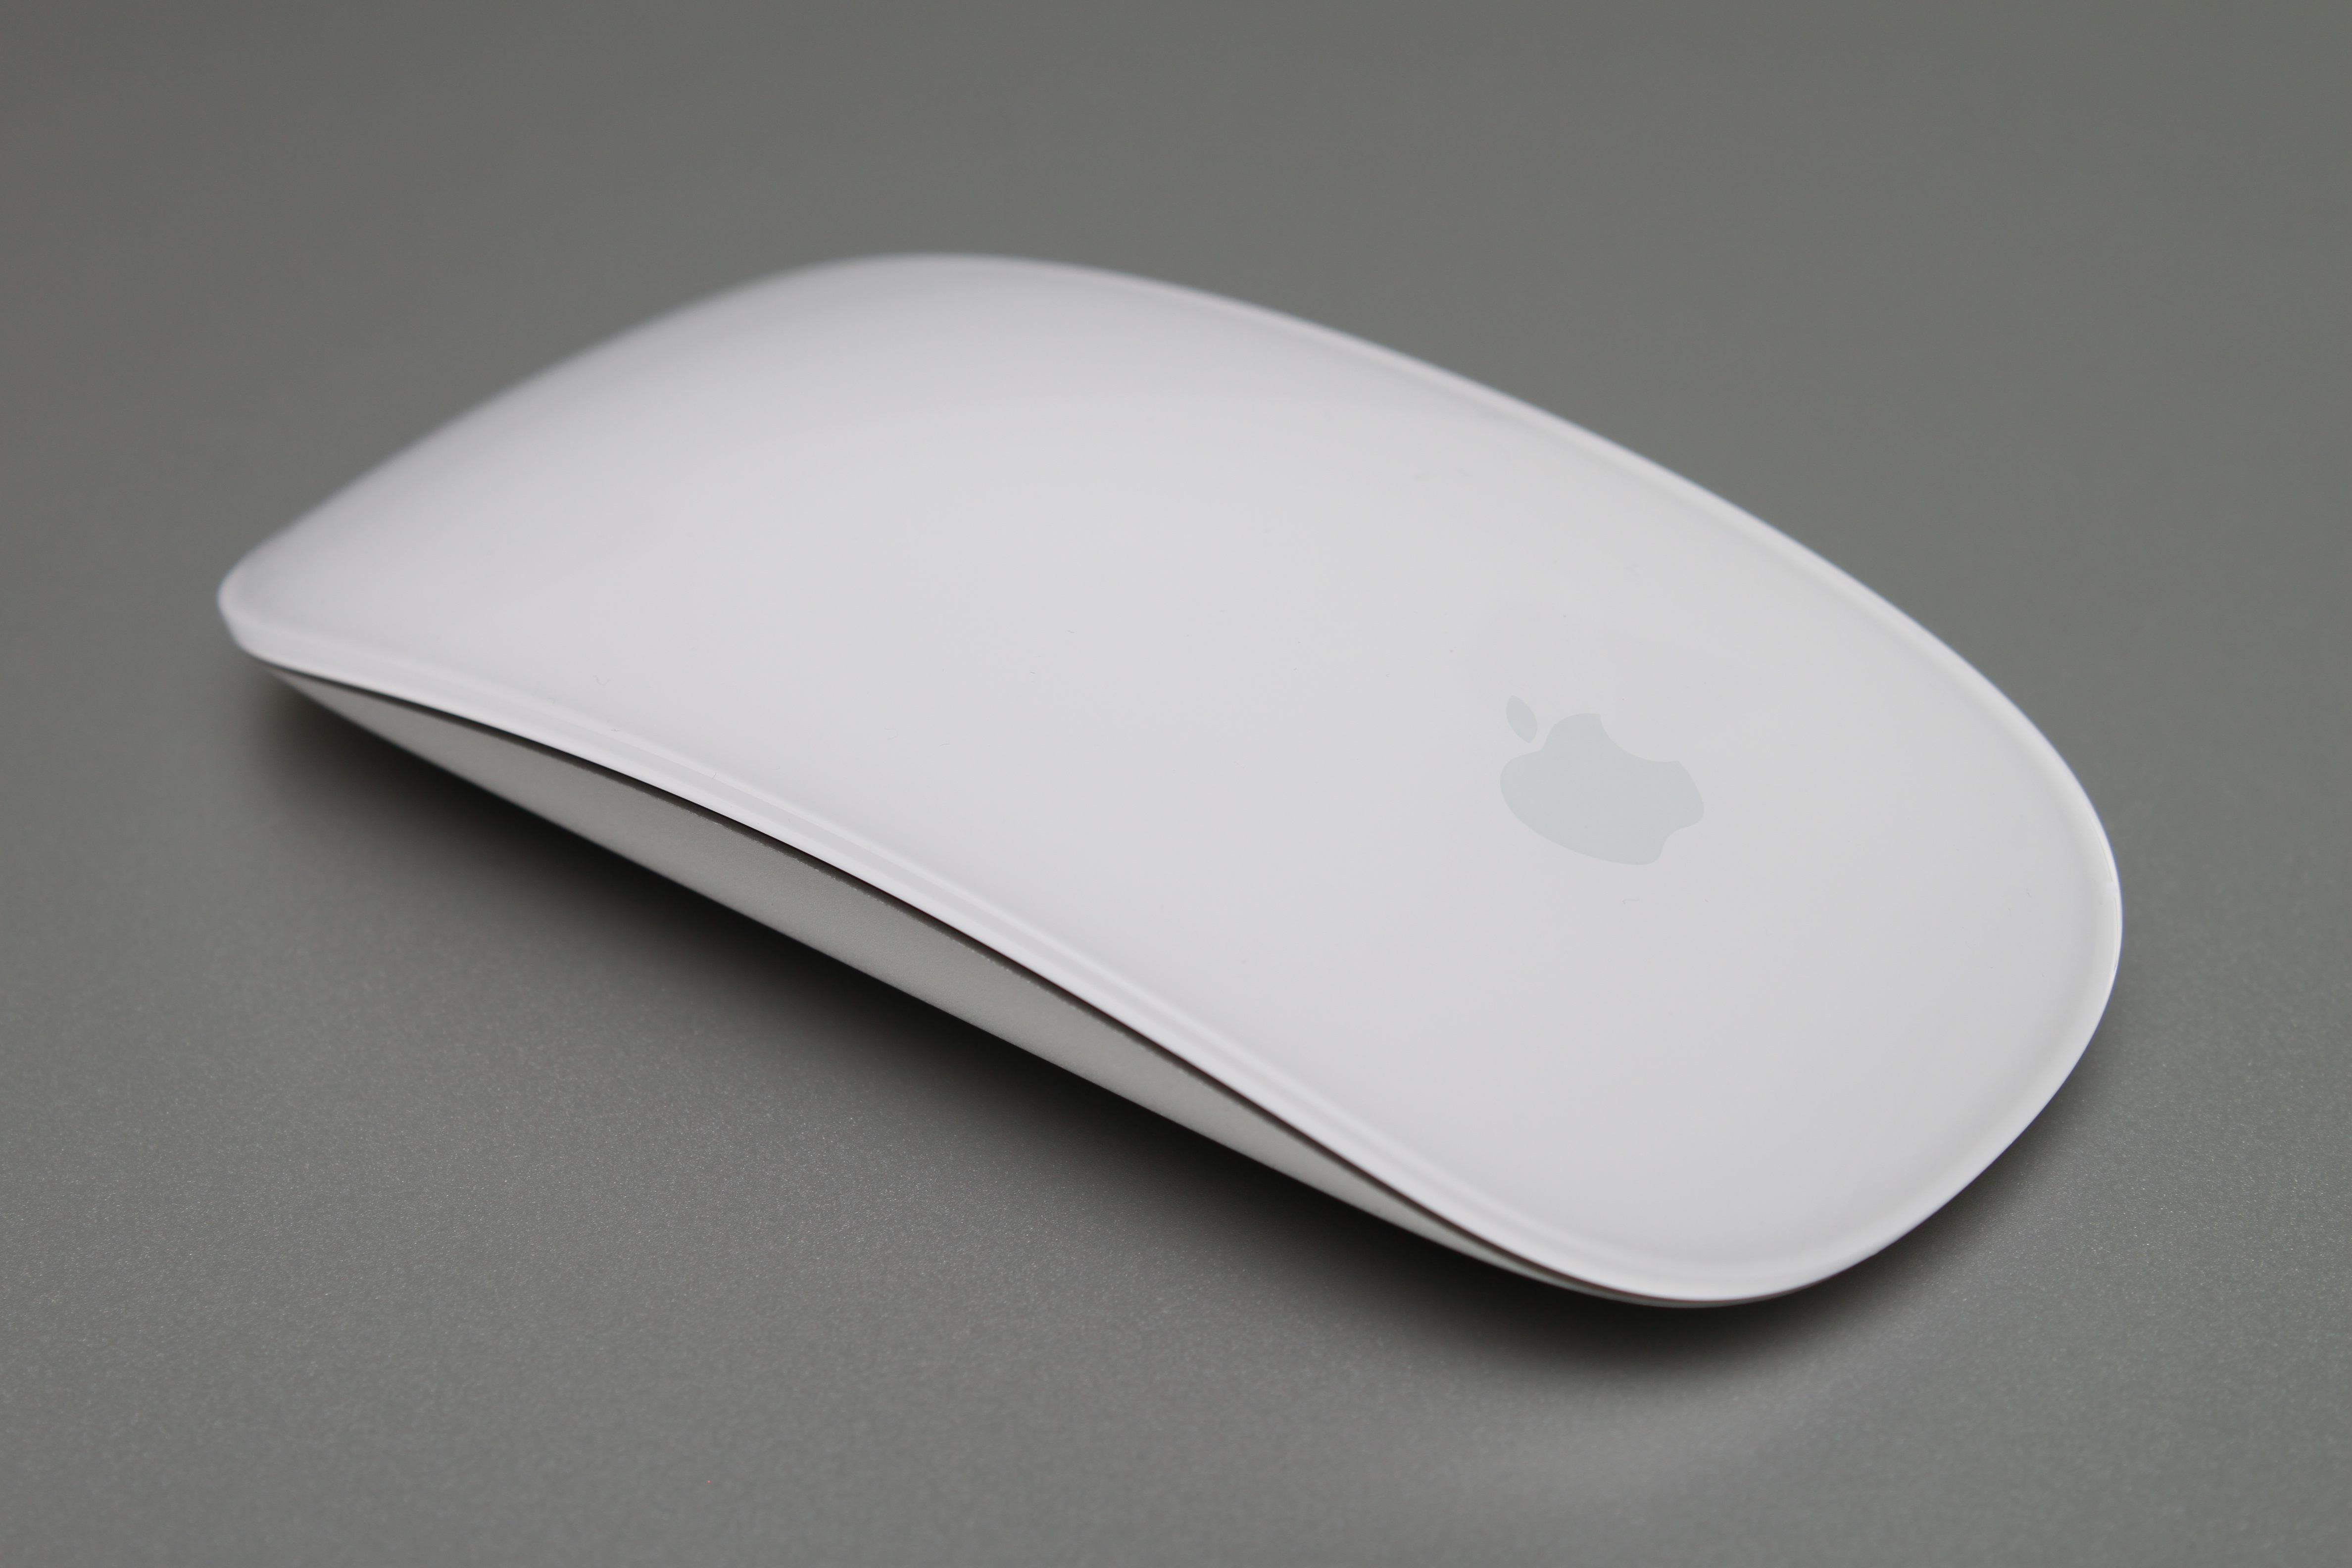 Magic Mouse 2 Wikipedia